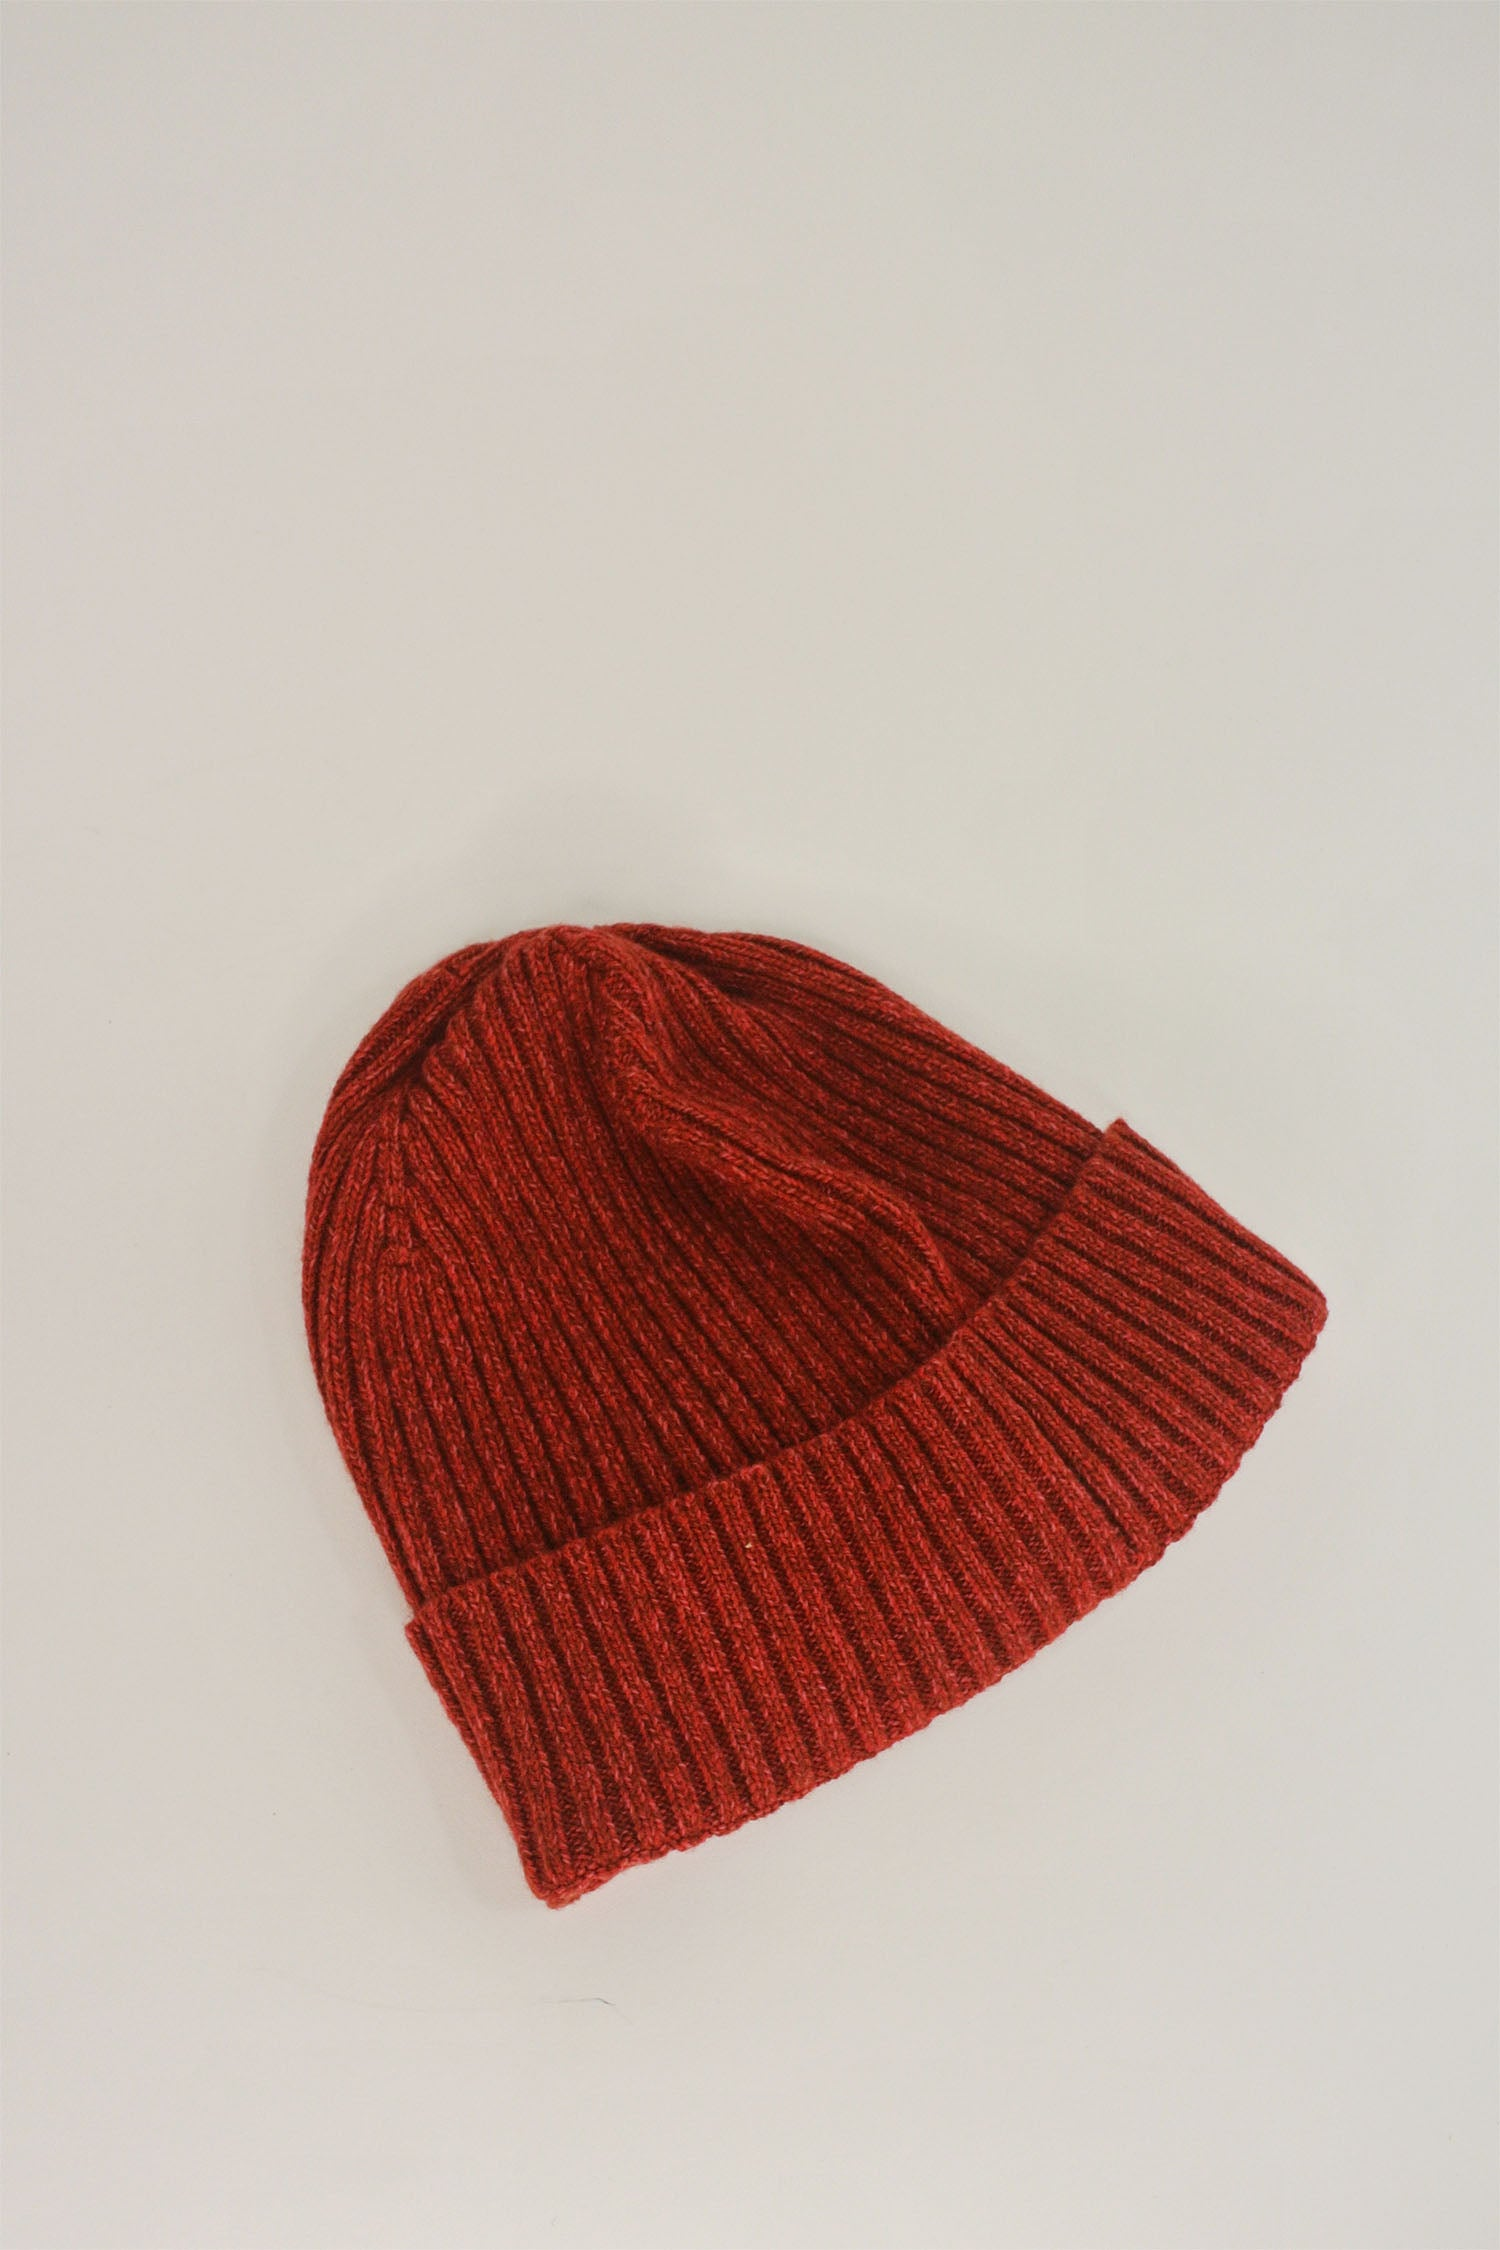 Chanel Cashmere Red Pearl Toque (New With Tags)